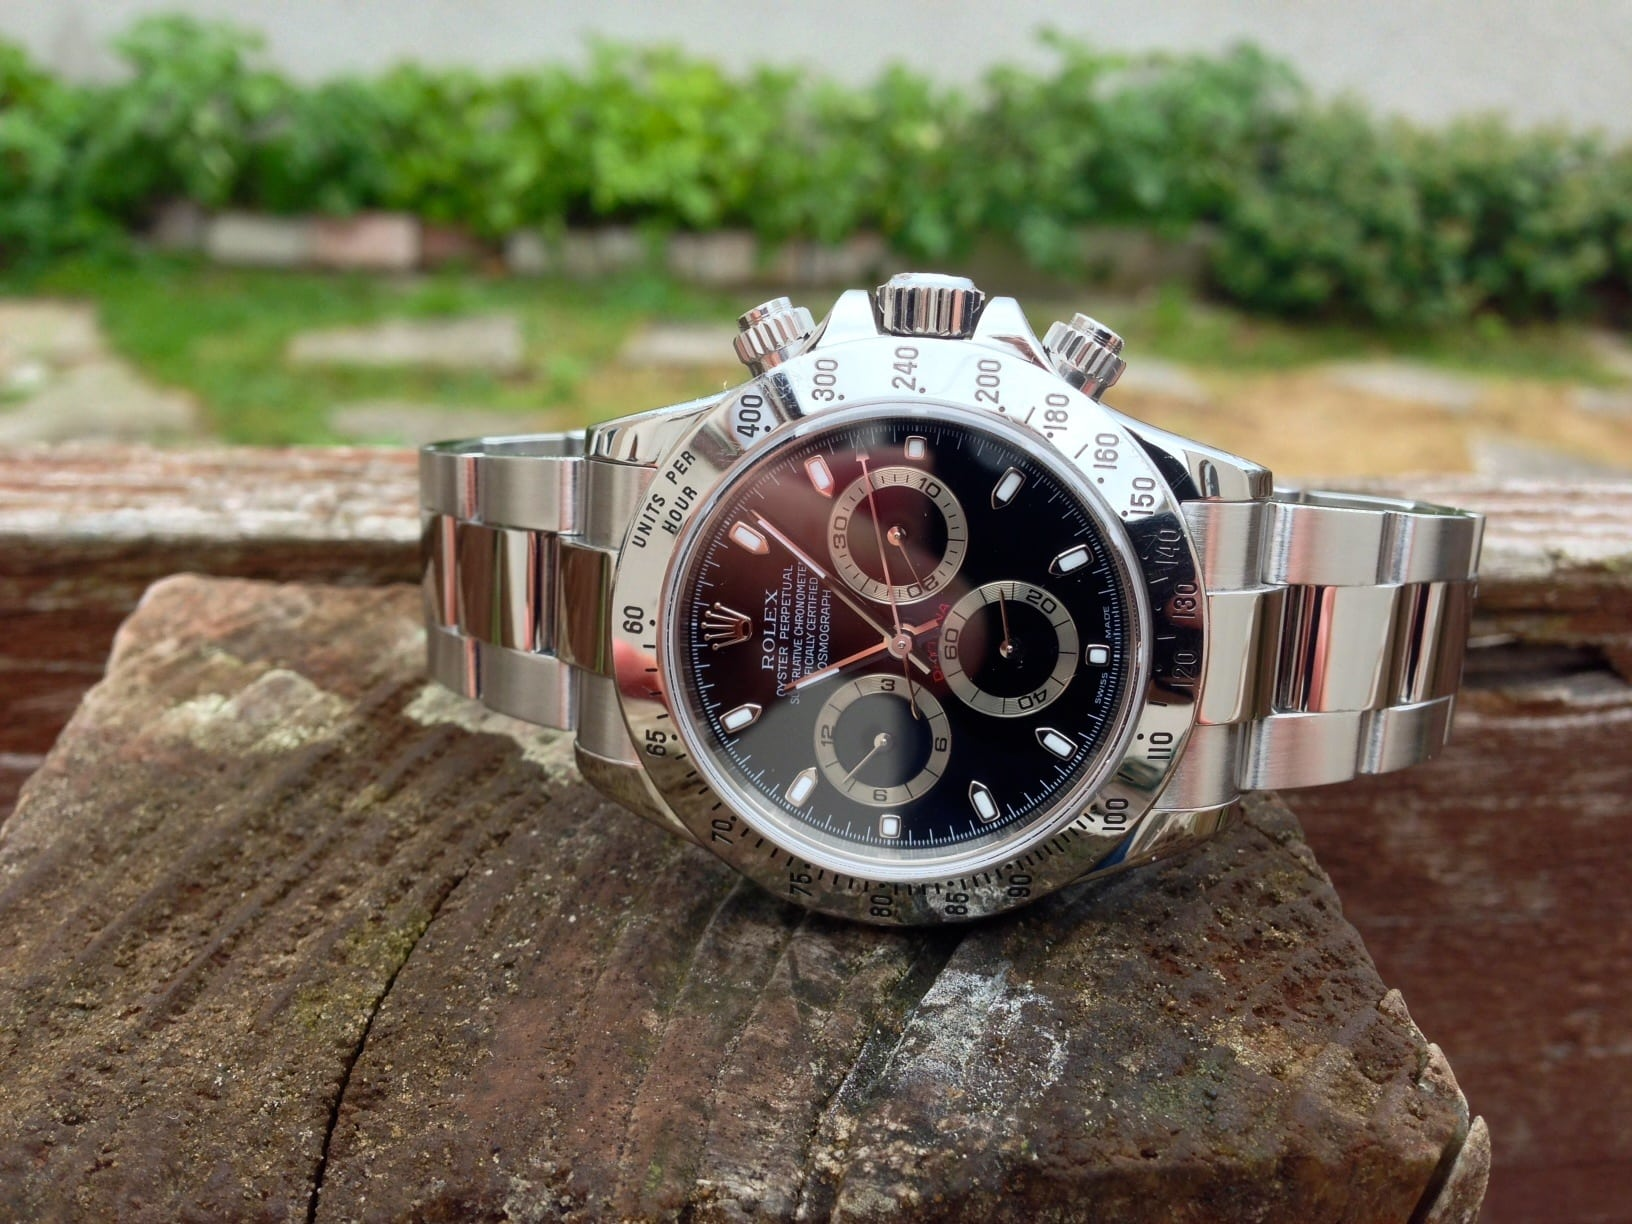 Rolex Cosmograph Daytona 116520 Early Thin Hands